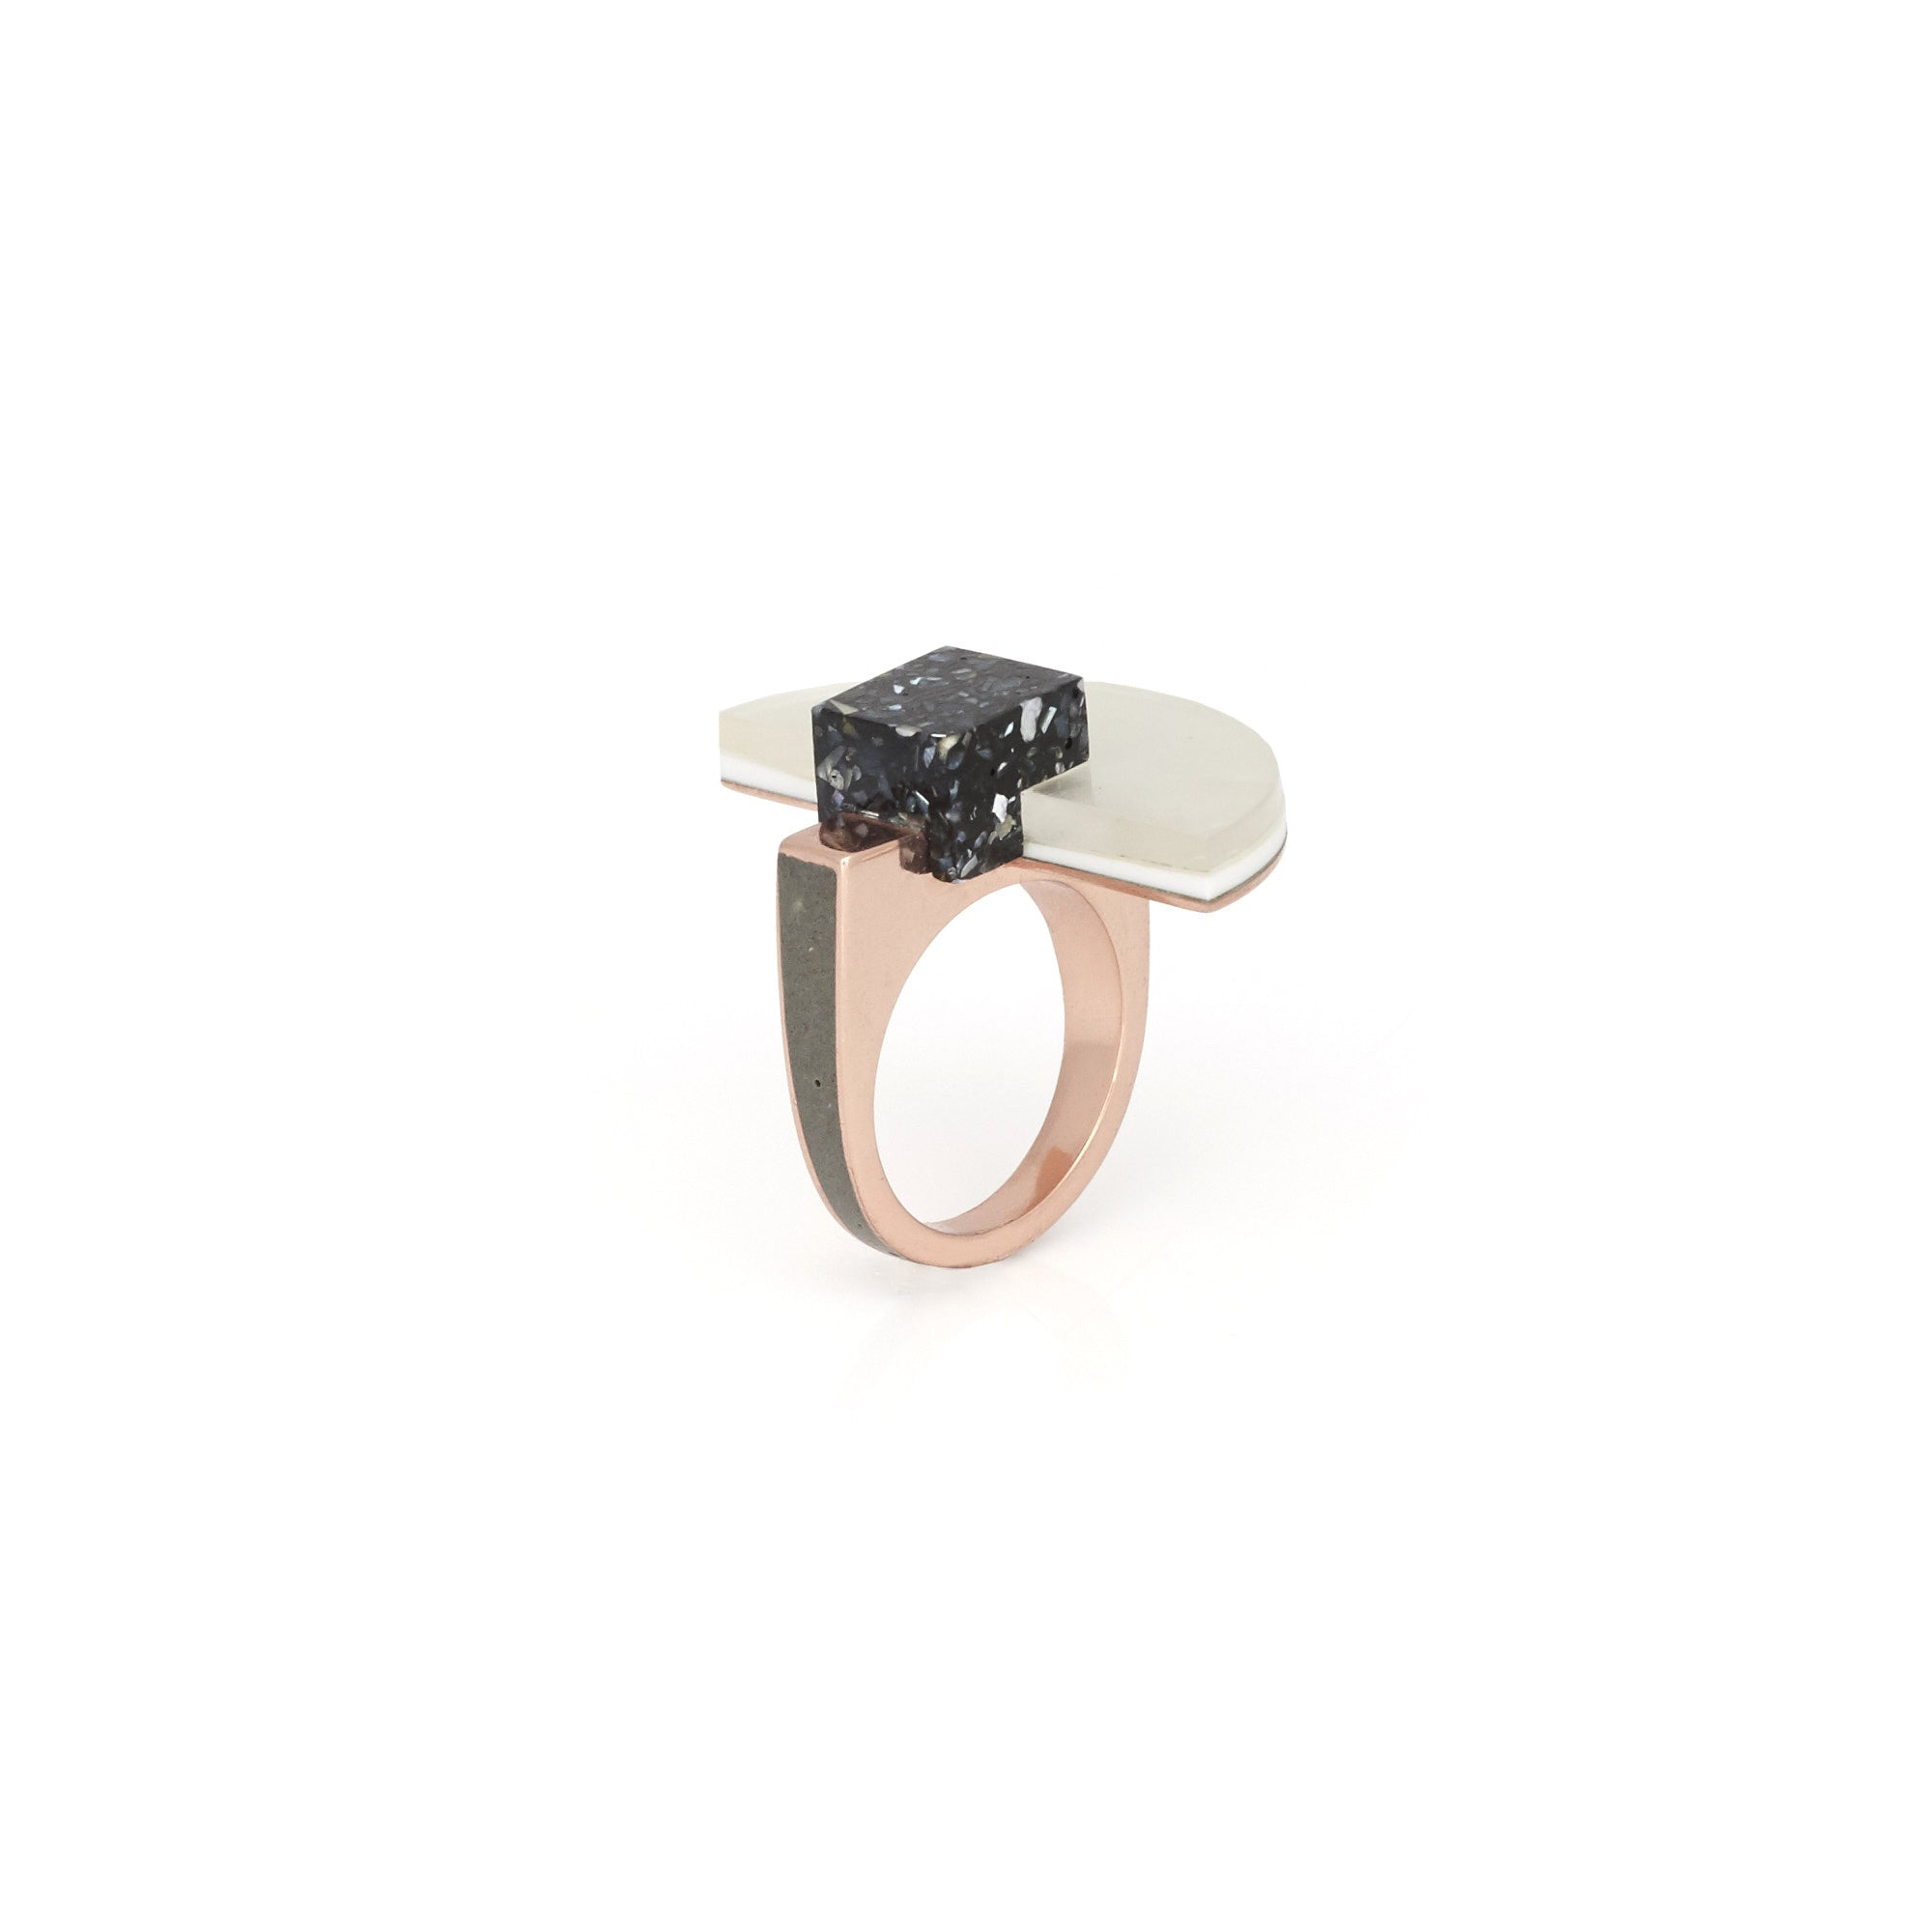 Statement fashion ring featuring hand cut mother of pearl and polished brass.